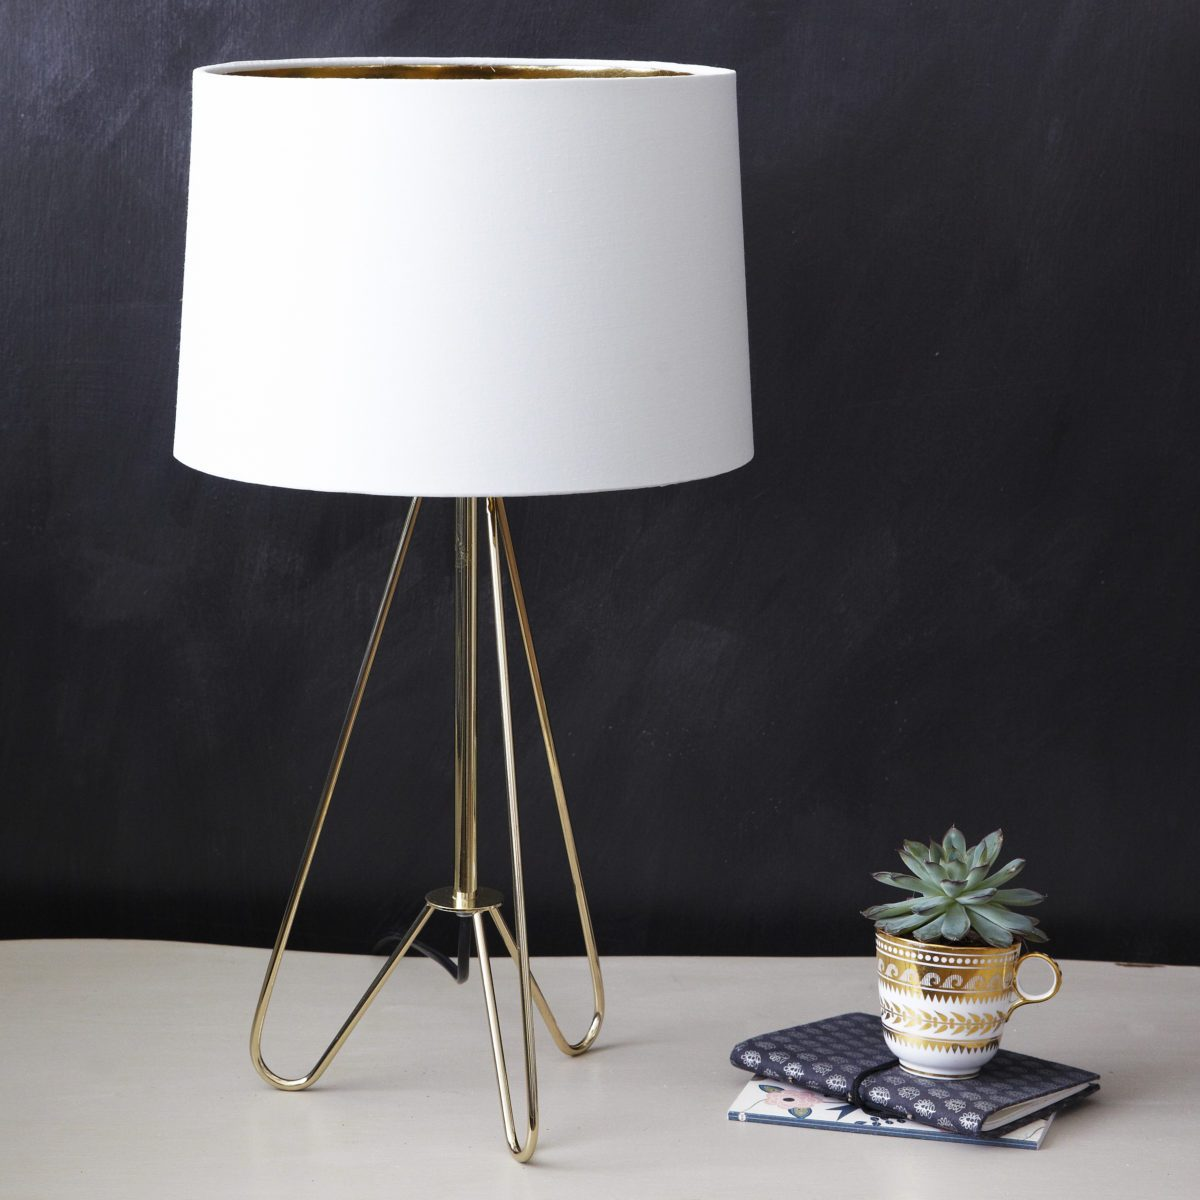 Gold Tripod Table Lamp with Shade